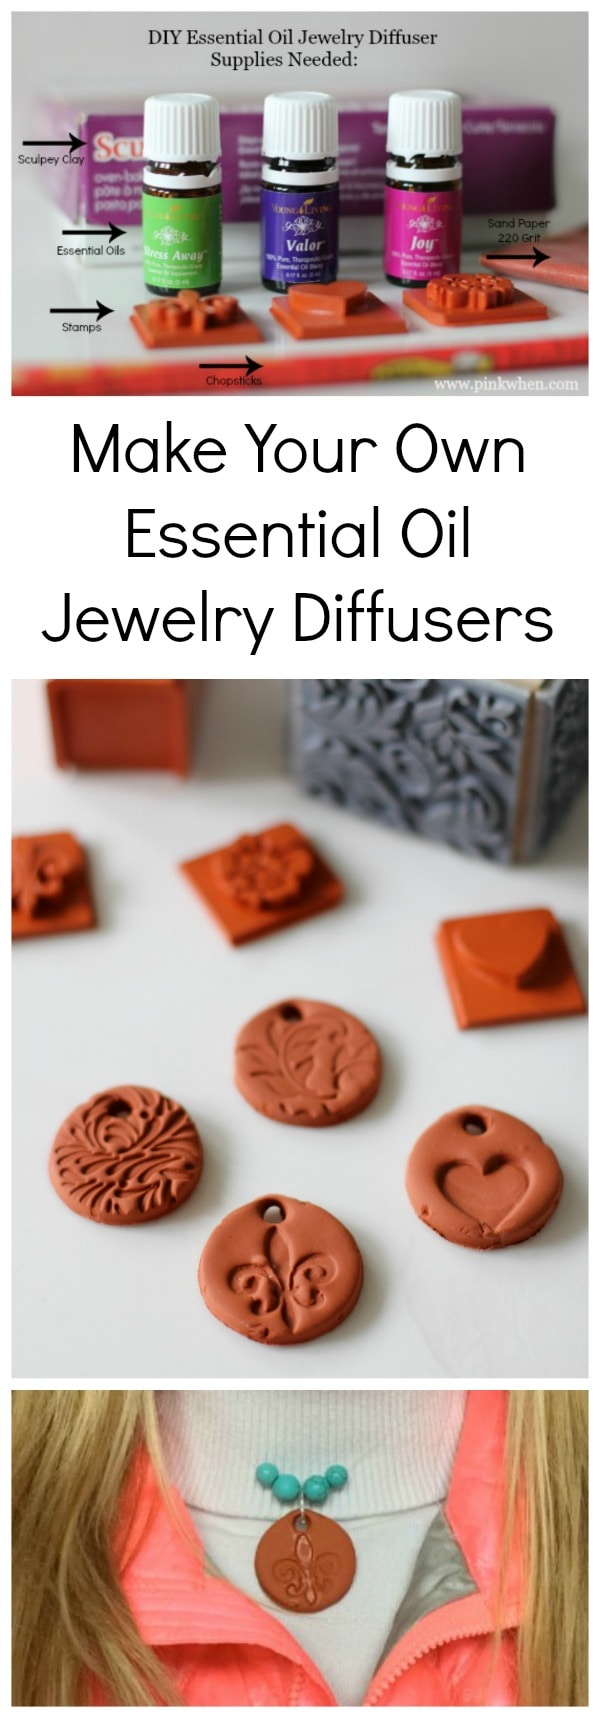 Make Your Own Essential Oil Jewelry Diffusers - DIY